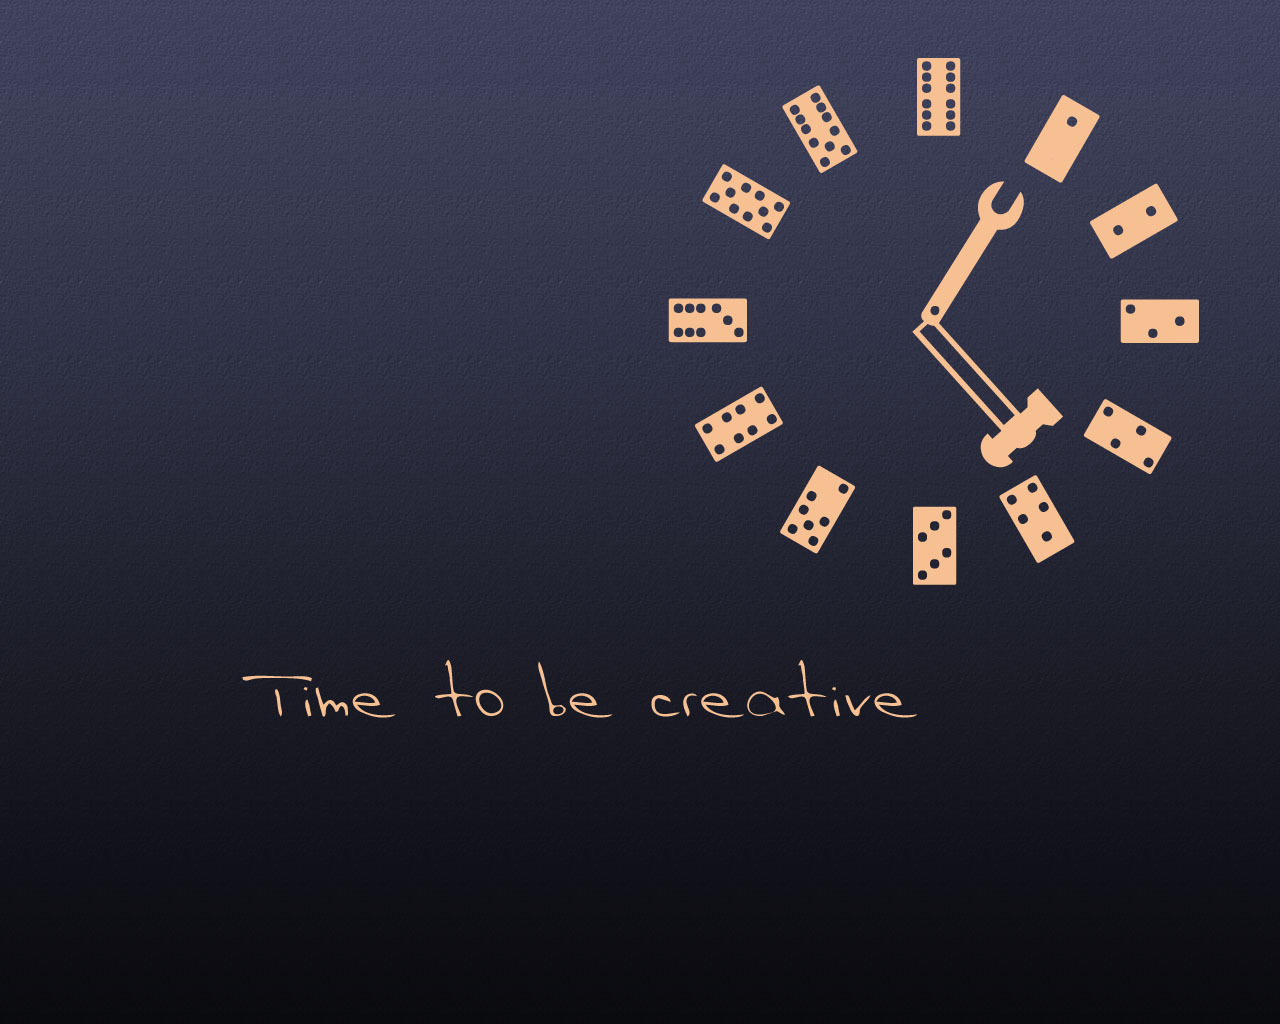 creative ads,commercial images,wallpapers | everything creative